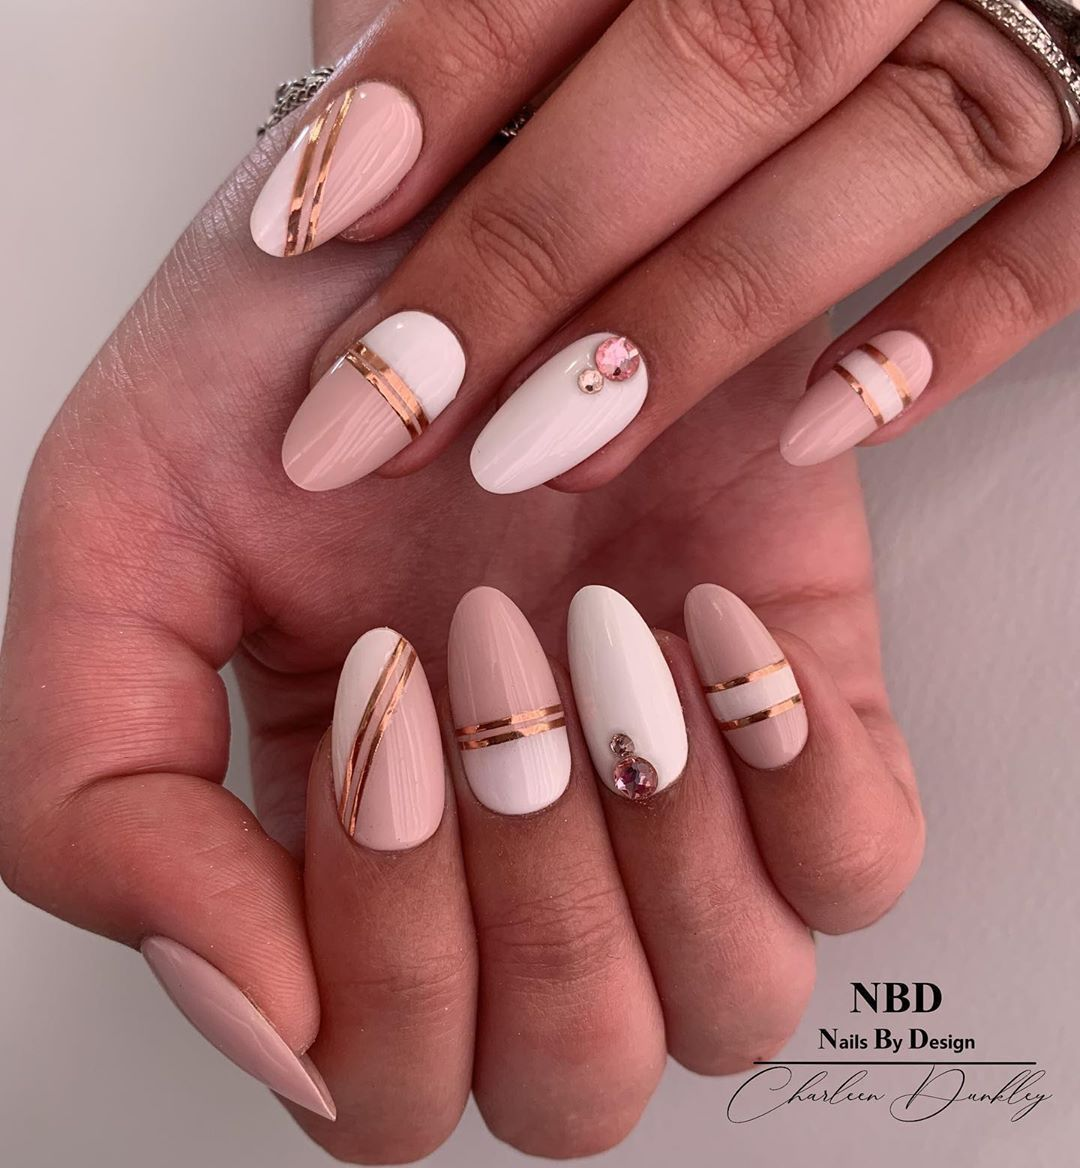 NBD-Charleen Dunkley on Instagram: Pink white and Rose Gold #gel #pink #pinknails #rosegoldnails #whitenails #white #nailtechnician #lovemyjob #lovemyclients #naillife